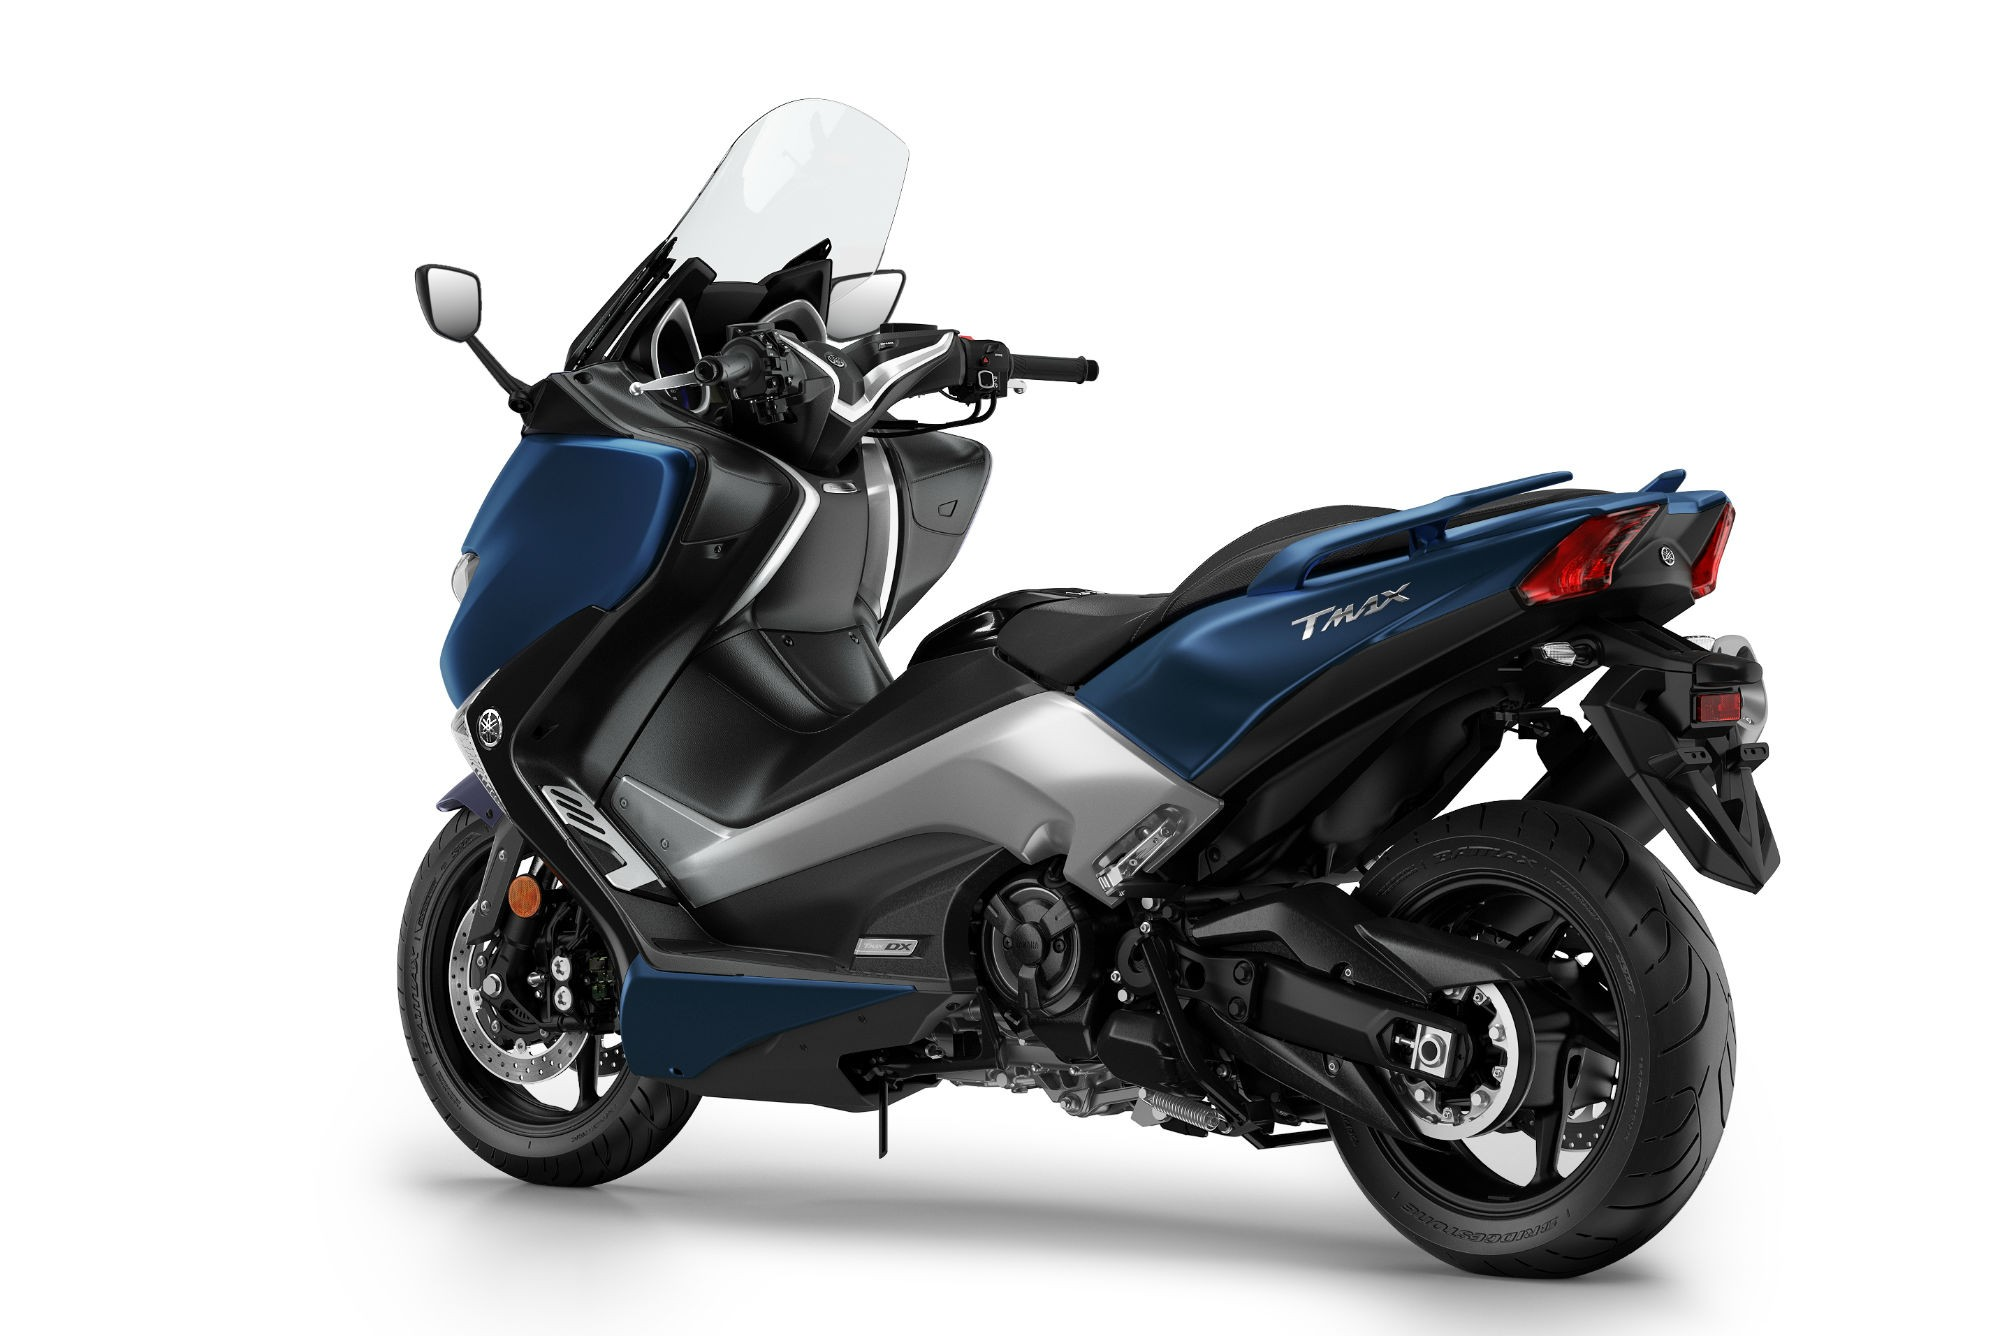 2017 Yamaha Tmax Scooter Presented For Europe Autoevolution